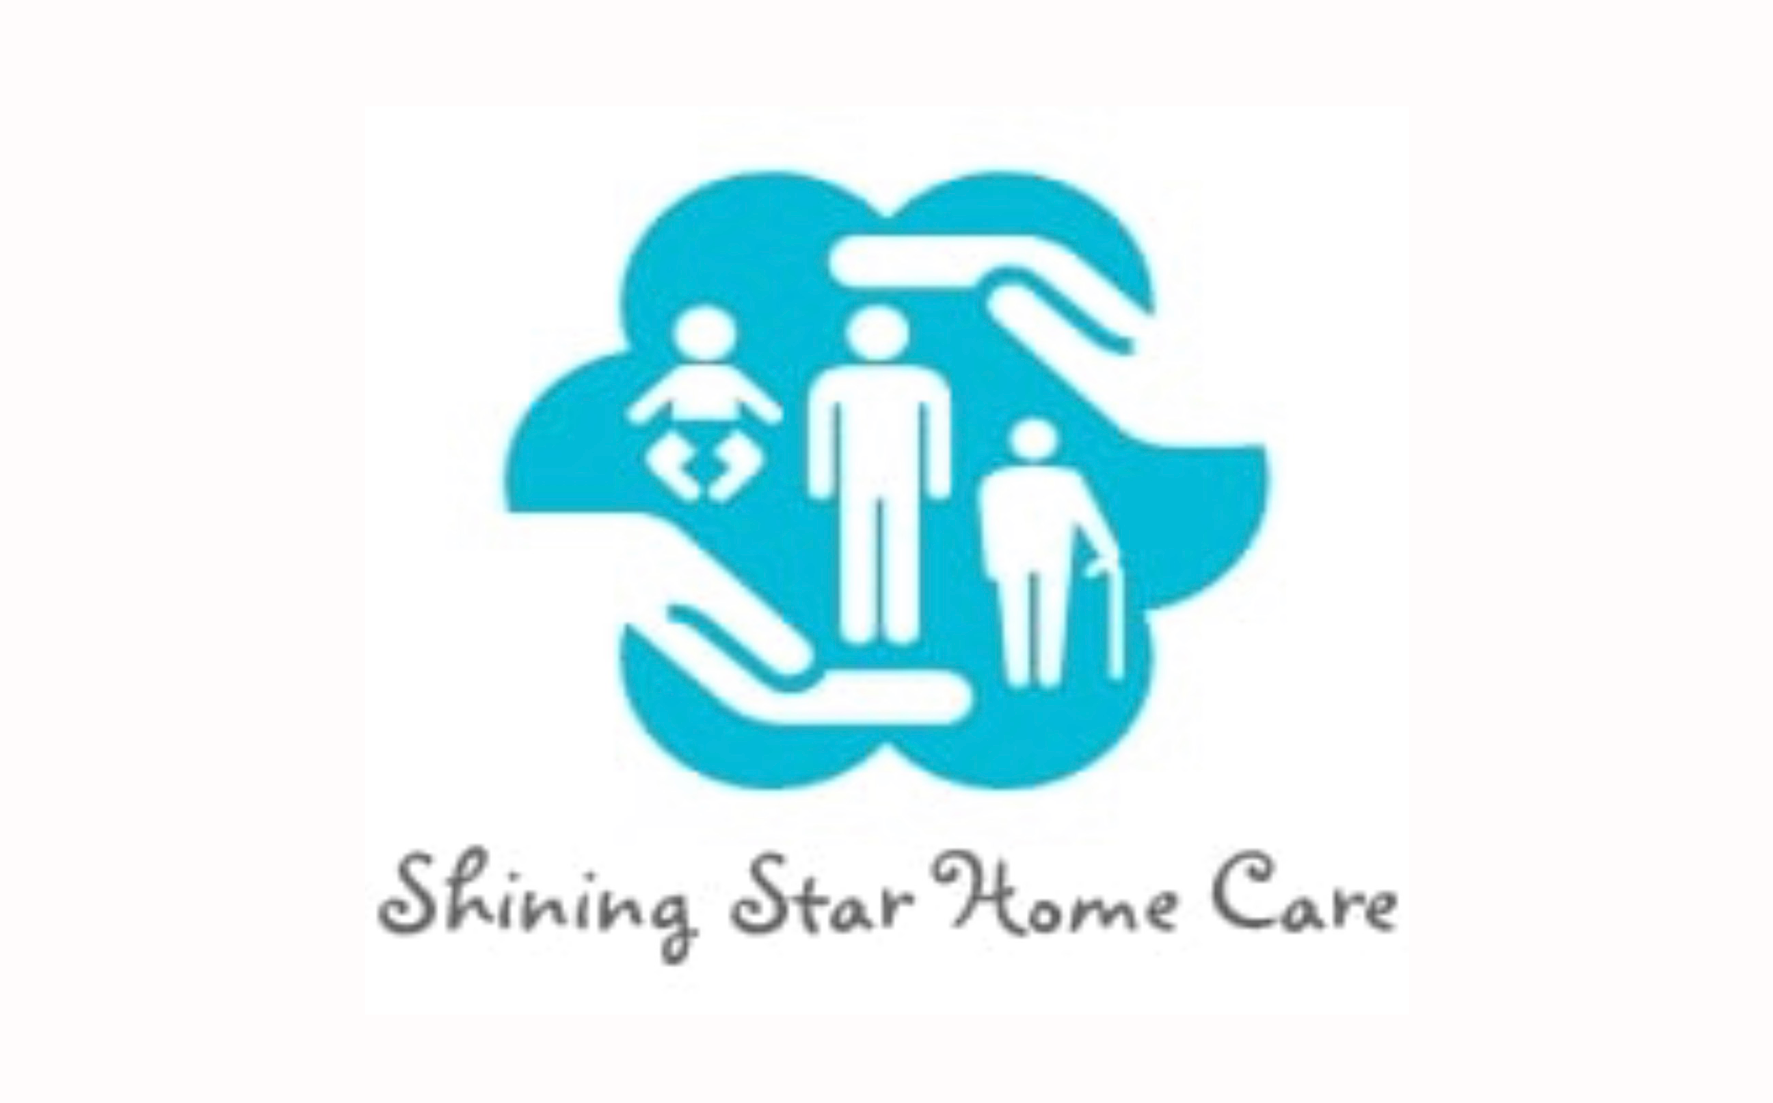 Shining Star Home Care Inc. - Pasadena, CA